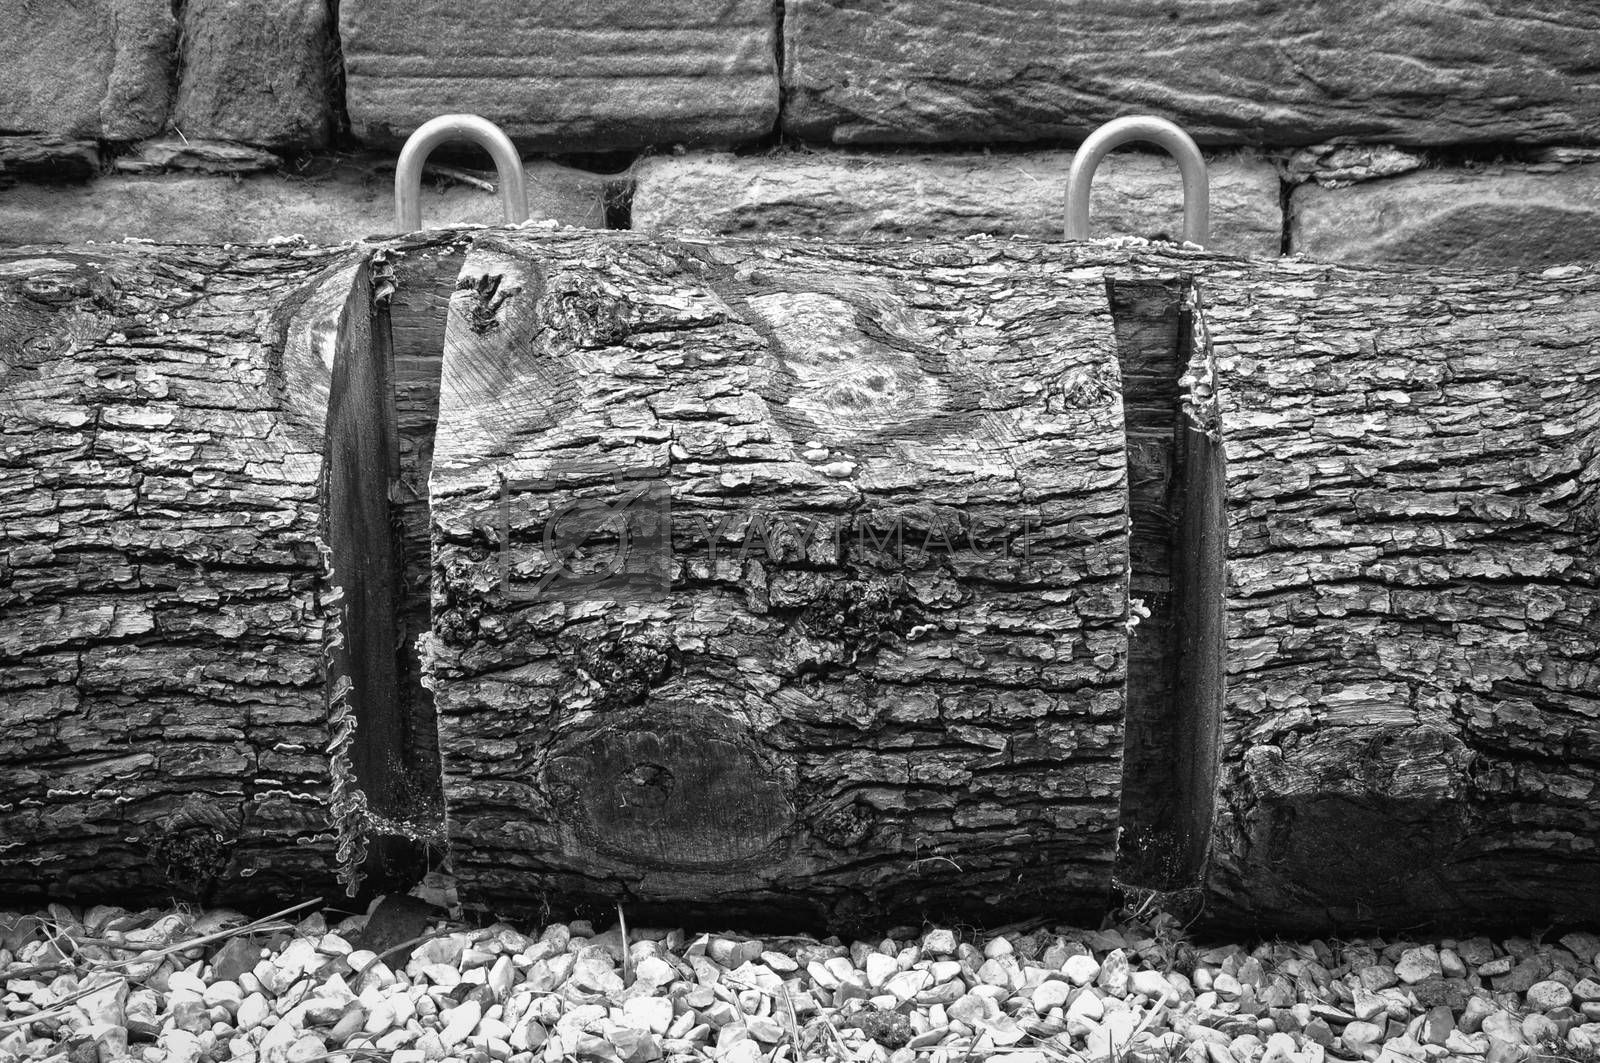 Black and white image of an environmentally friendly bicycle rack made from a tree truck.